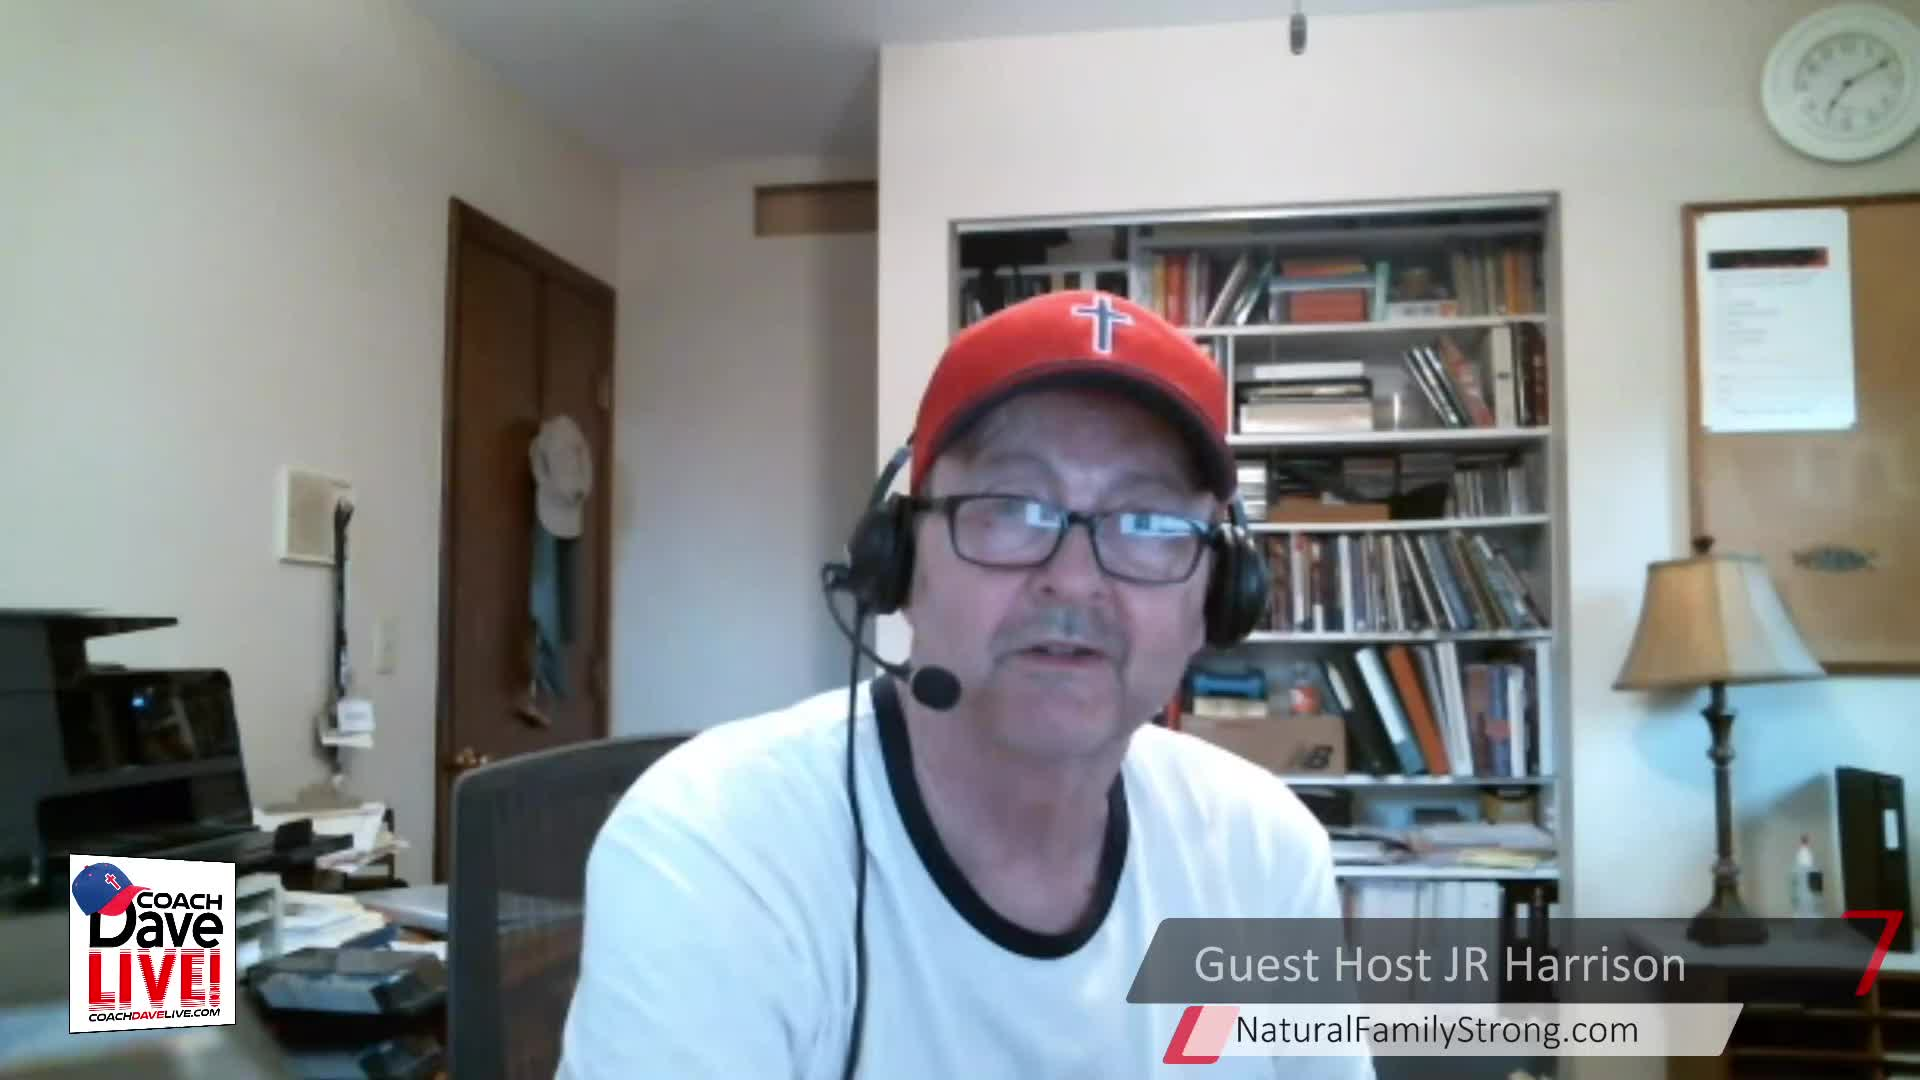 Coach Dave LIVE   5-21-2021   FFF: GUEST HOST JR HARRISON ON FAMILY